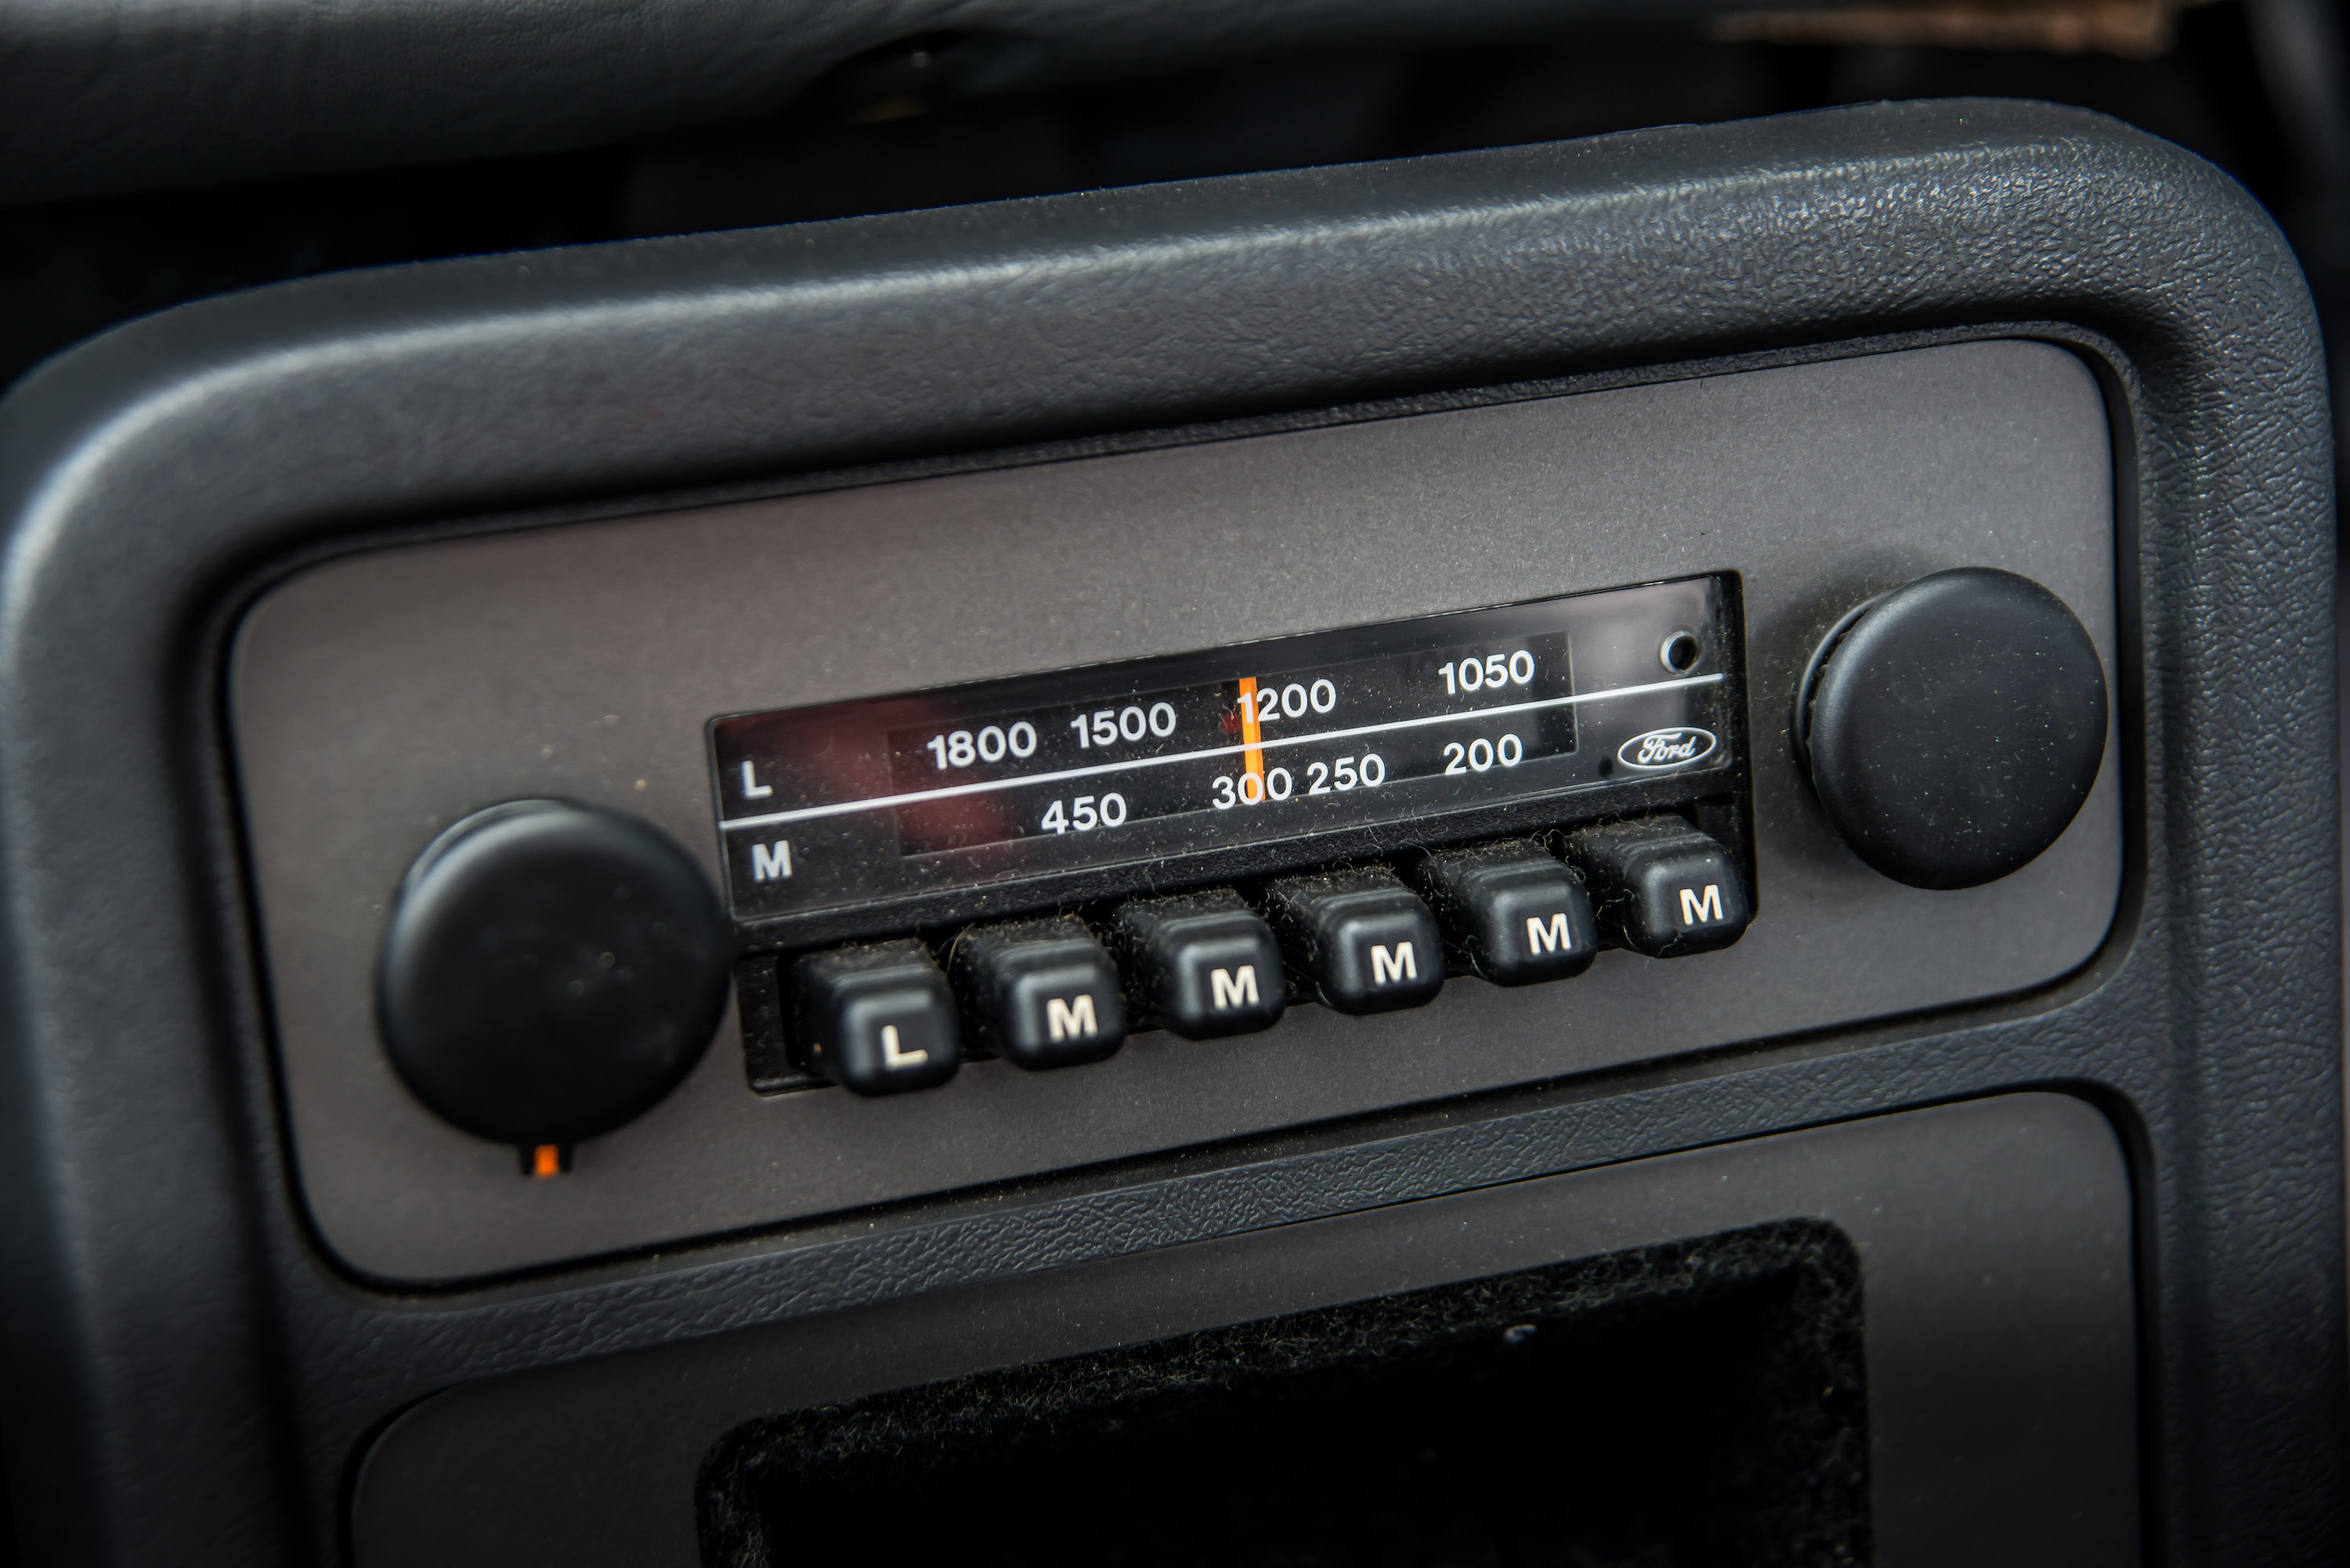 Fiesta XR2 mark 1 radio